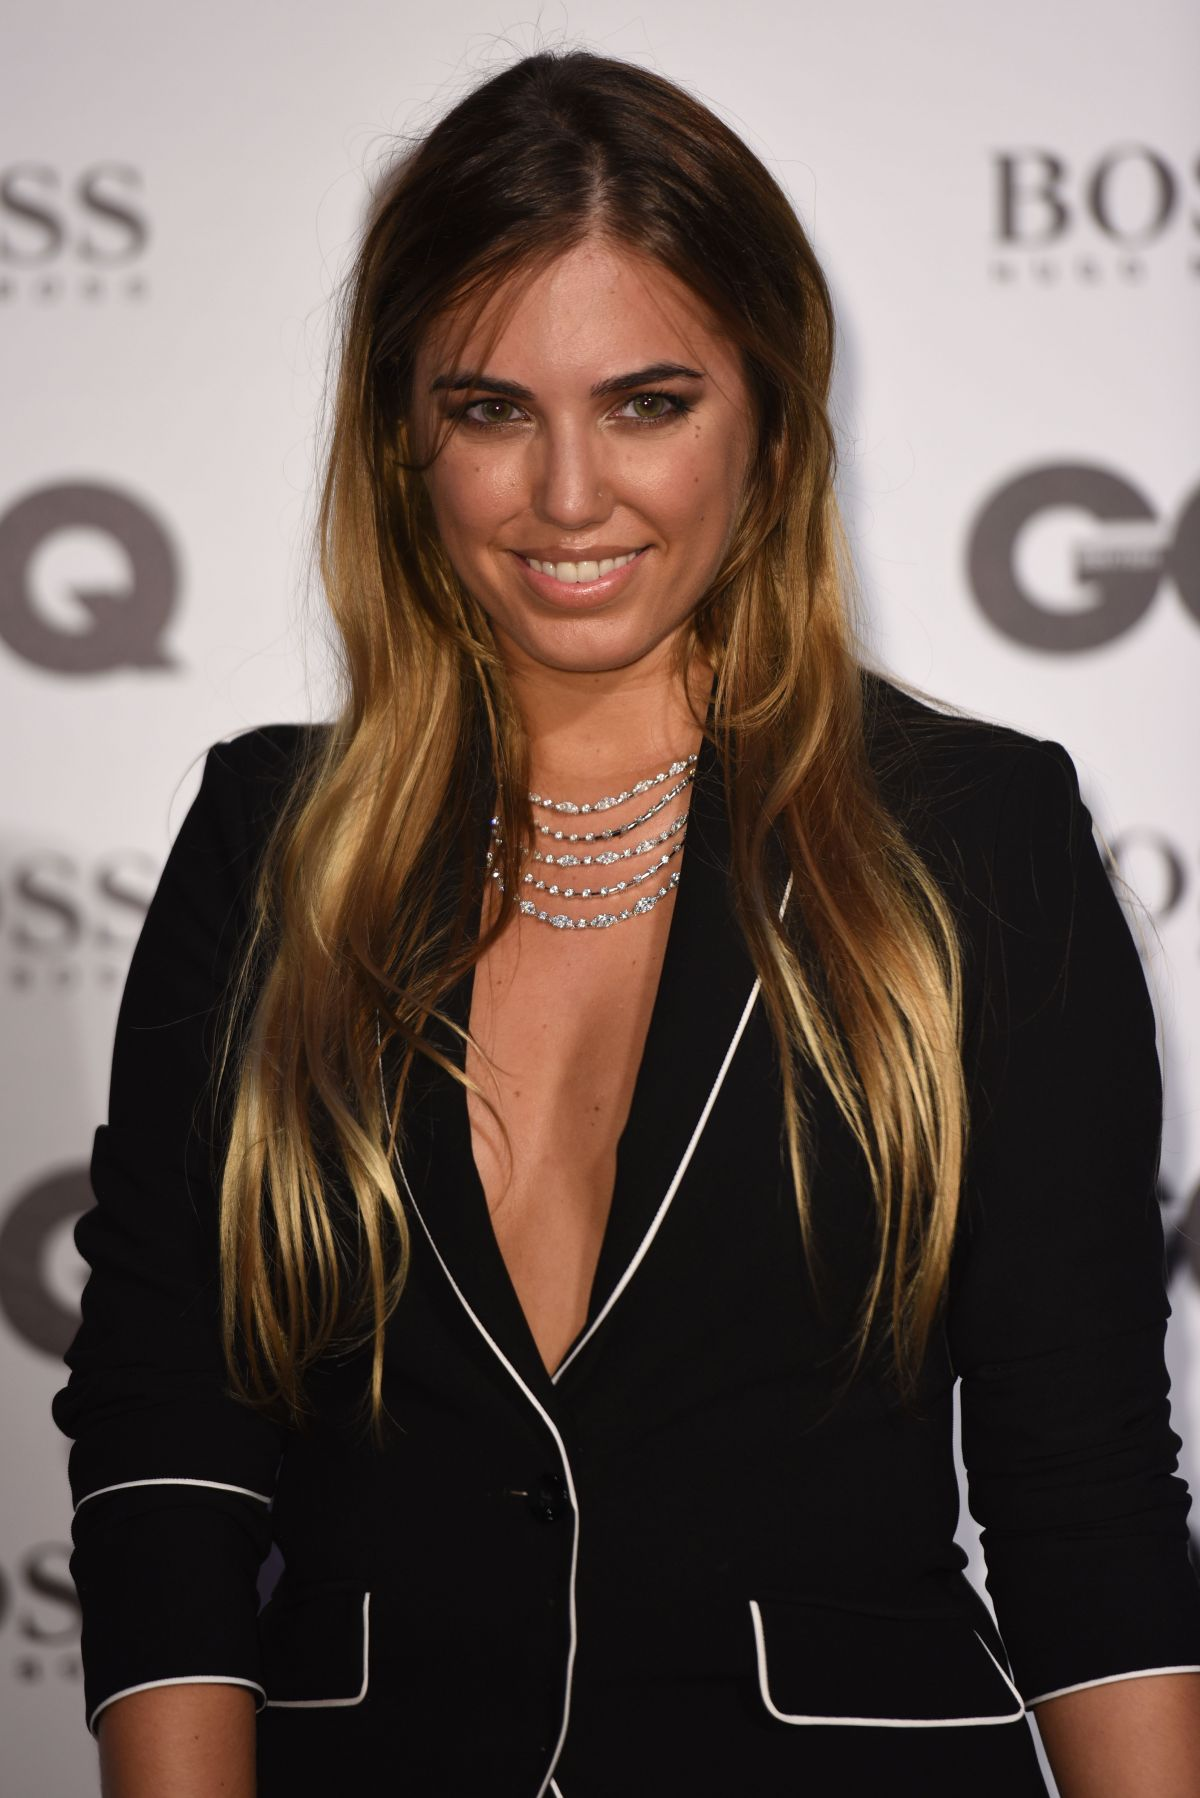 AMBER LE BON at GQ Men of the Year Awards 2017 in London 09/05/2017